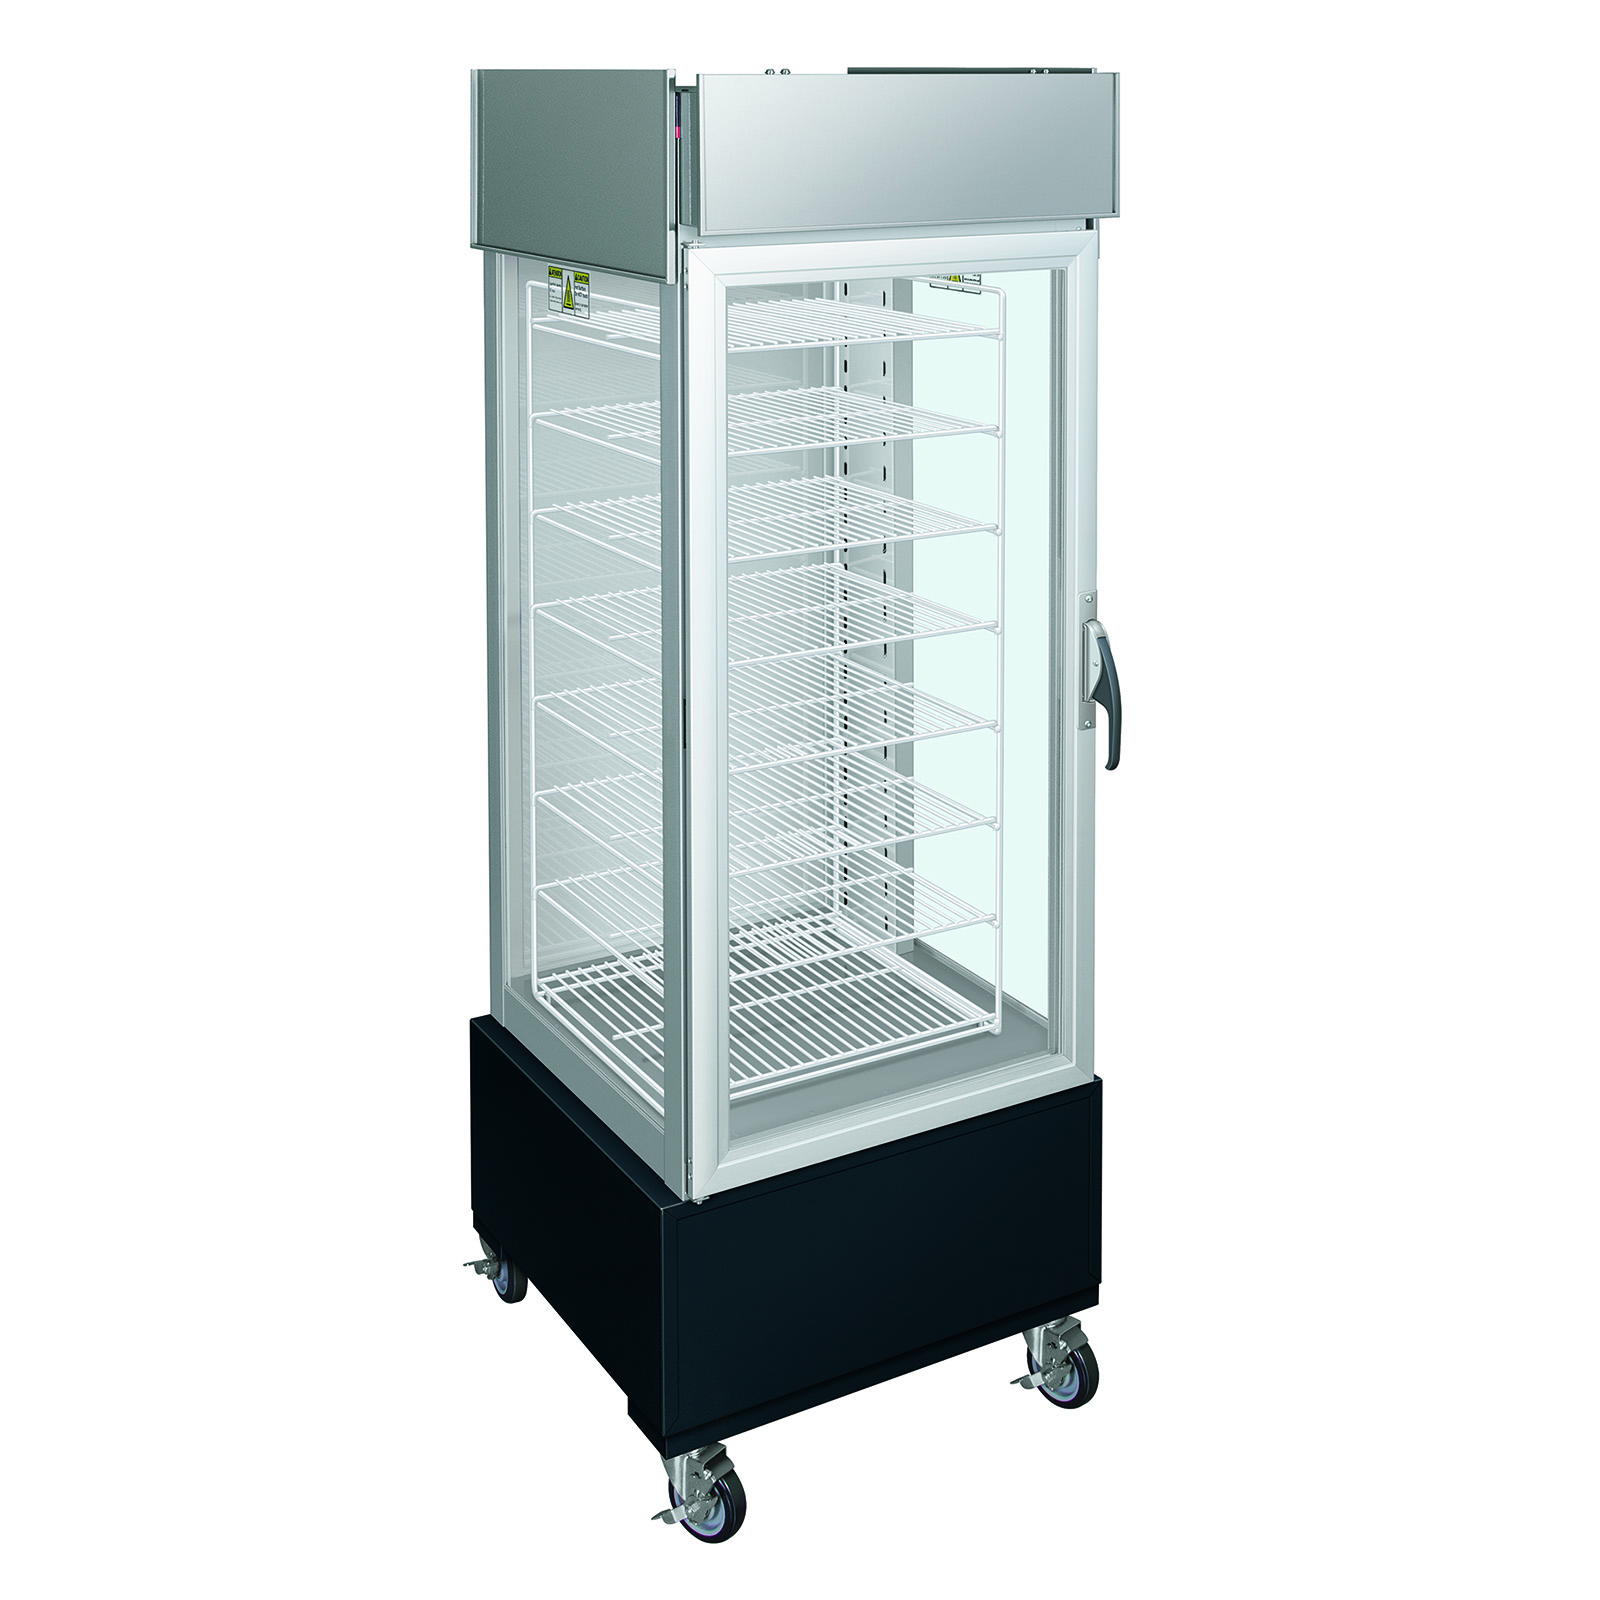 Hatco PFST-1XB display cabinets